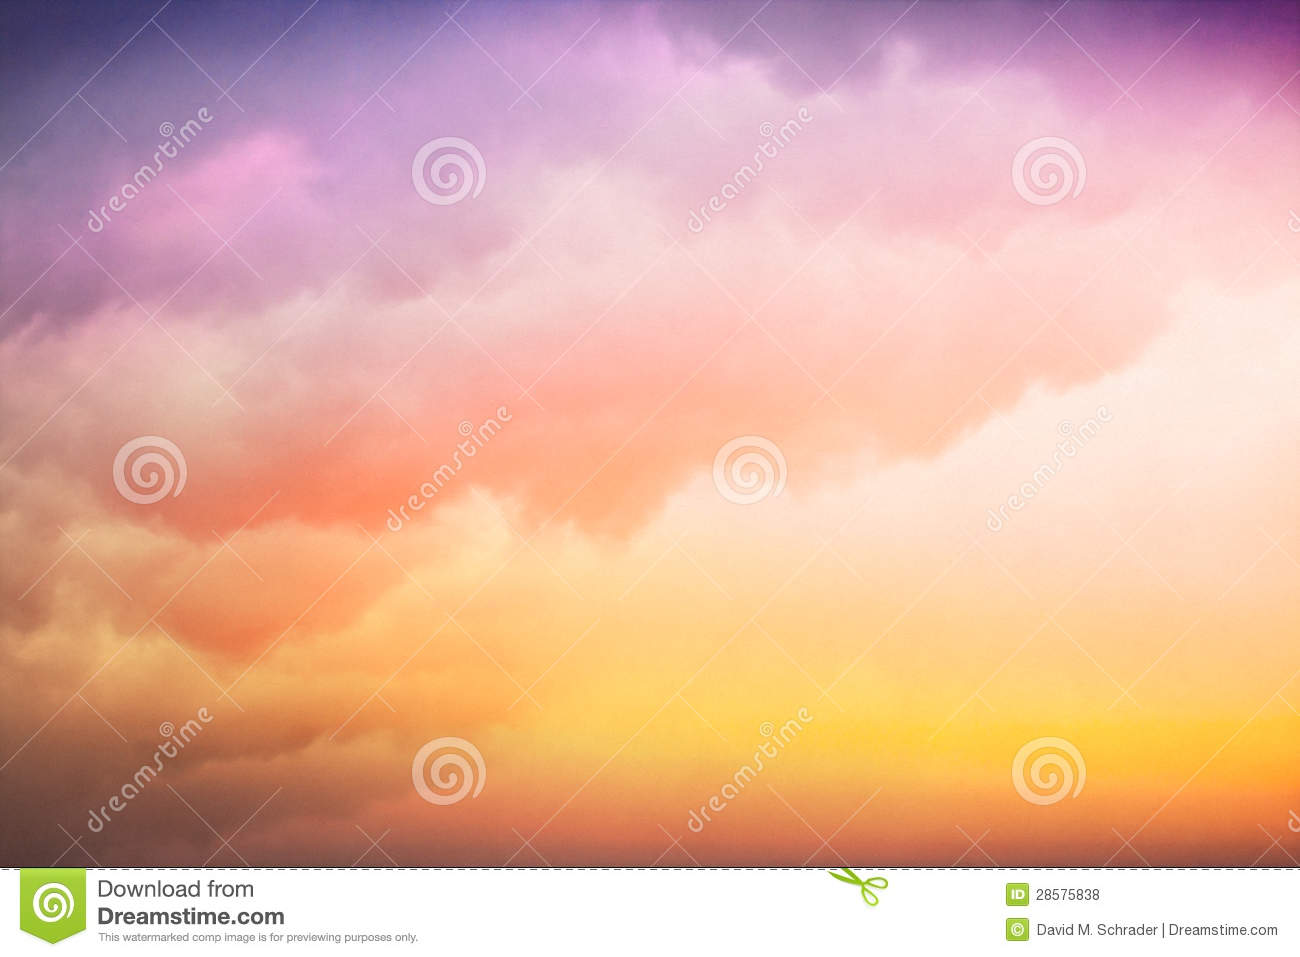 3d Abstract Rainbow Wallpaper Colorful Cloud Gradient Royalty Free Stock Photos Image